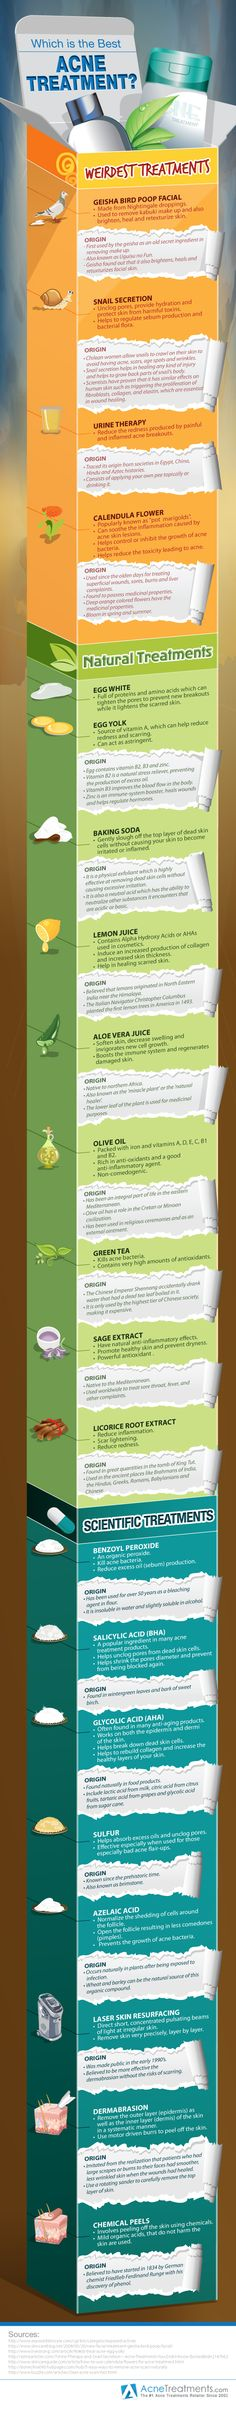 Which is the Best Acne Treatment?  [by Acne Treatments -- via #tipsographic]. More at tipsographic.com